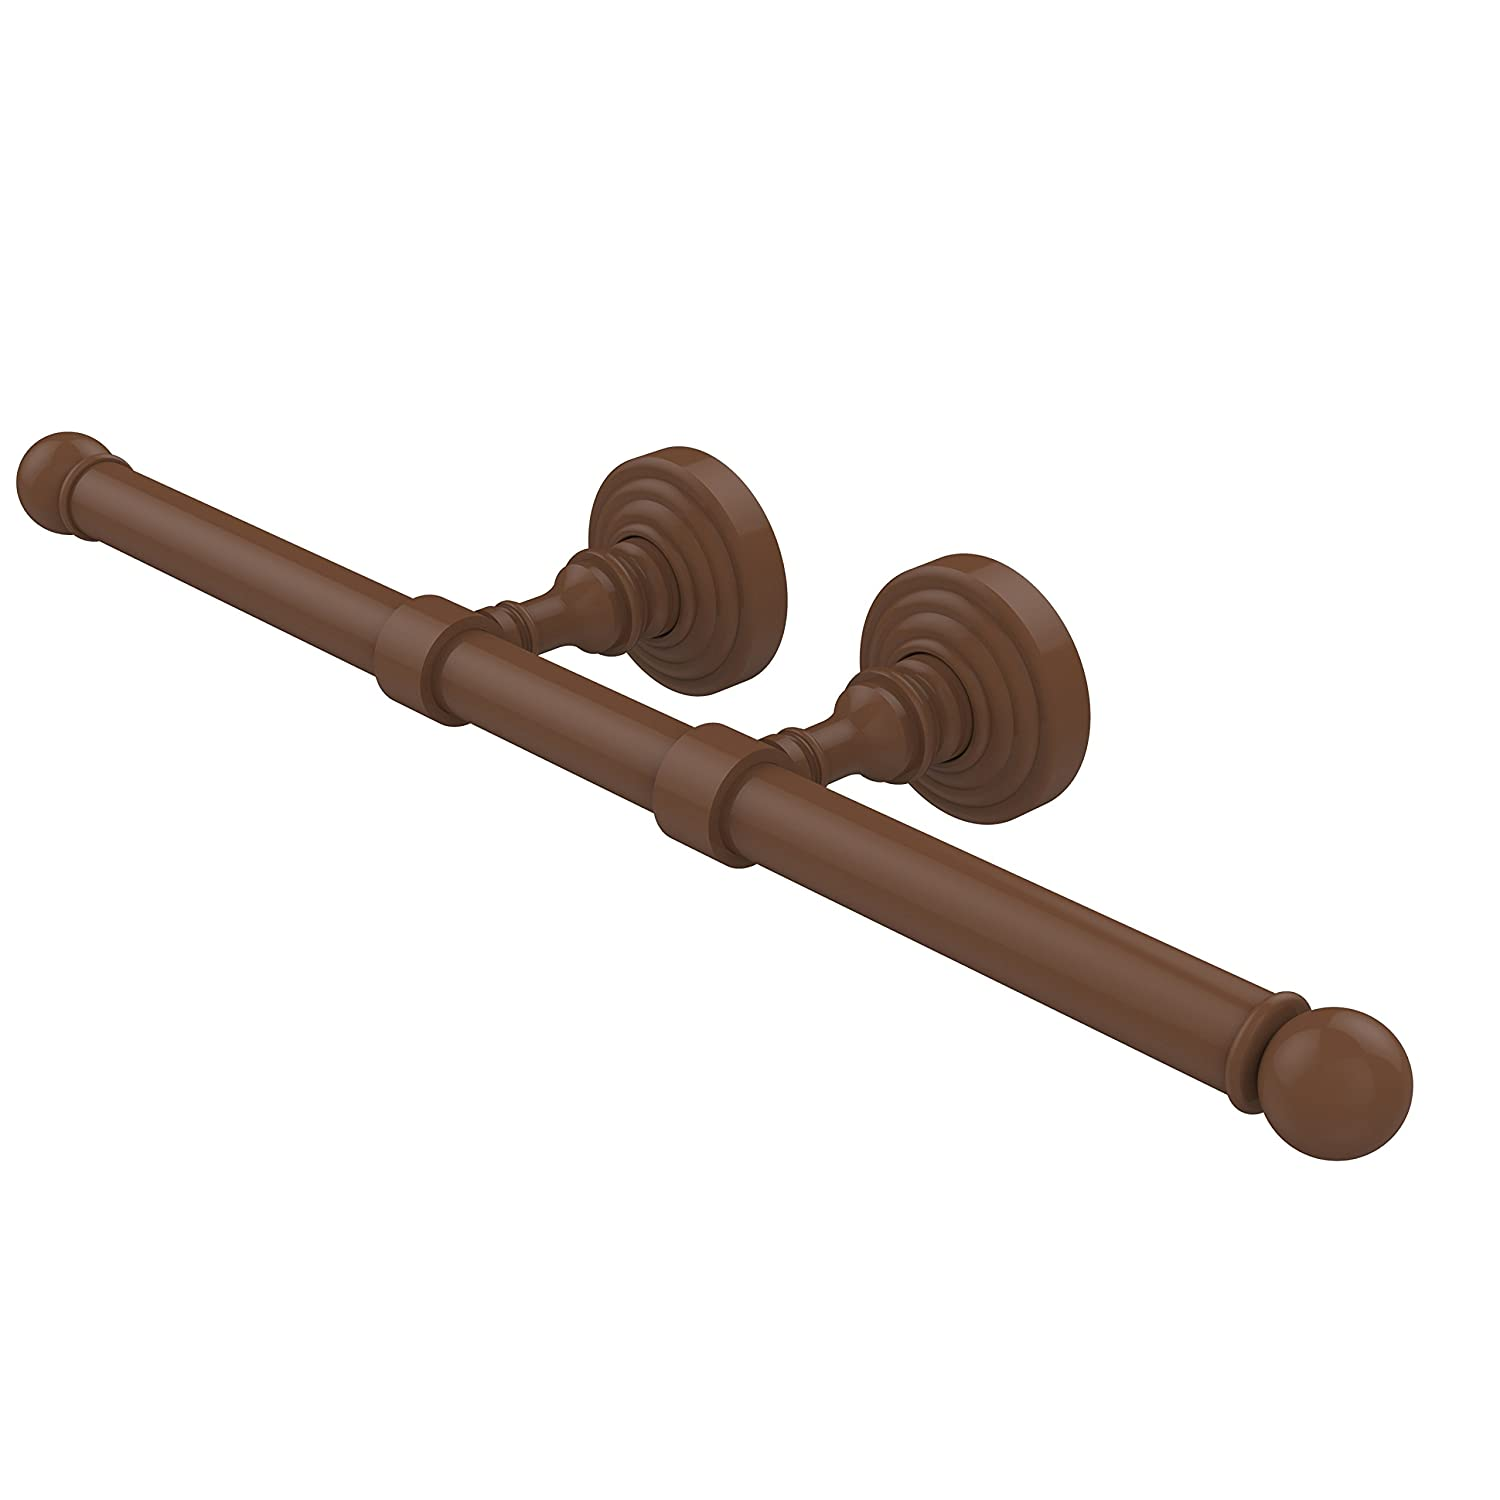 Allied Brass WP-24-2-ORB Waverly Place Collection Double Roll Toilet Tissue Holder Oil Rubbed Bronze